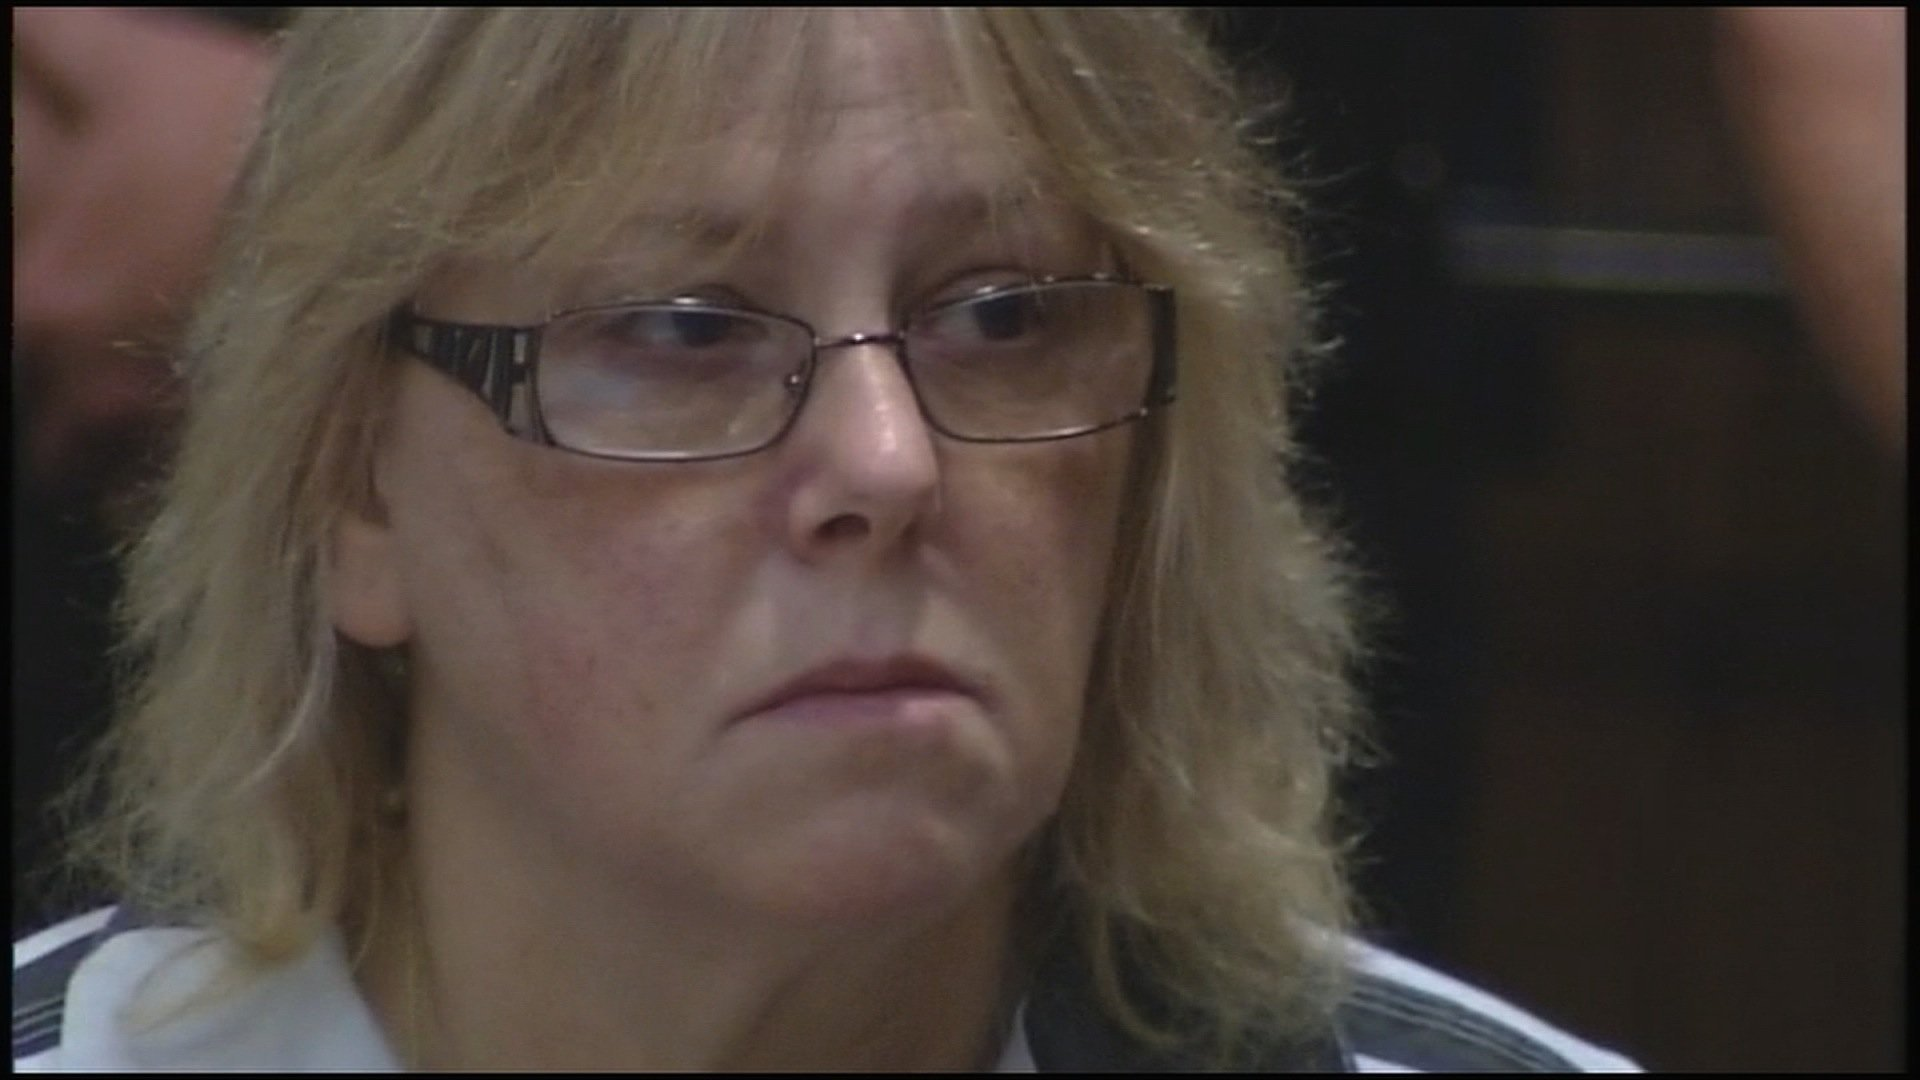 Joyce Mitchell, 51, the woman accused of helping David Sweat and Richard Matt escape from Clinton Correctional Facility in New York on June 5, 2015, pleaded guilty to two charges in the case on July 28. (Photo: CNN)